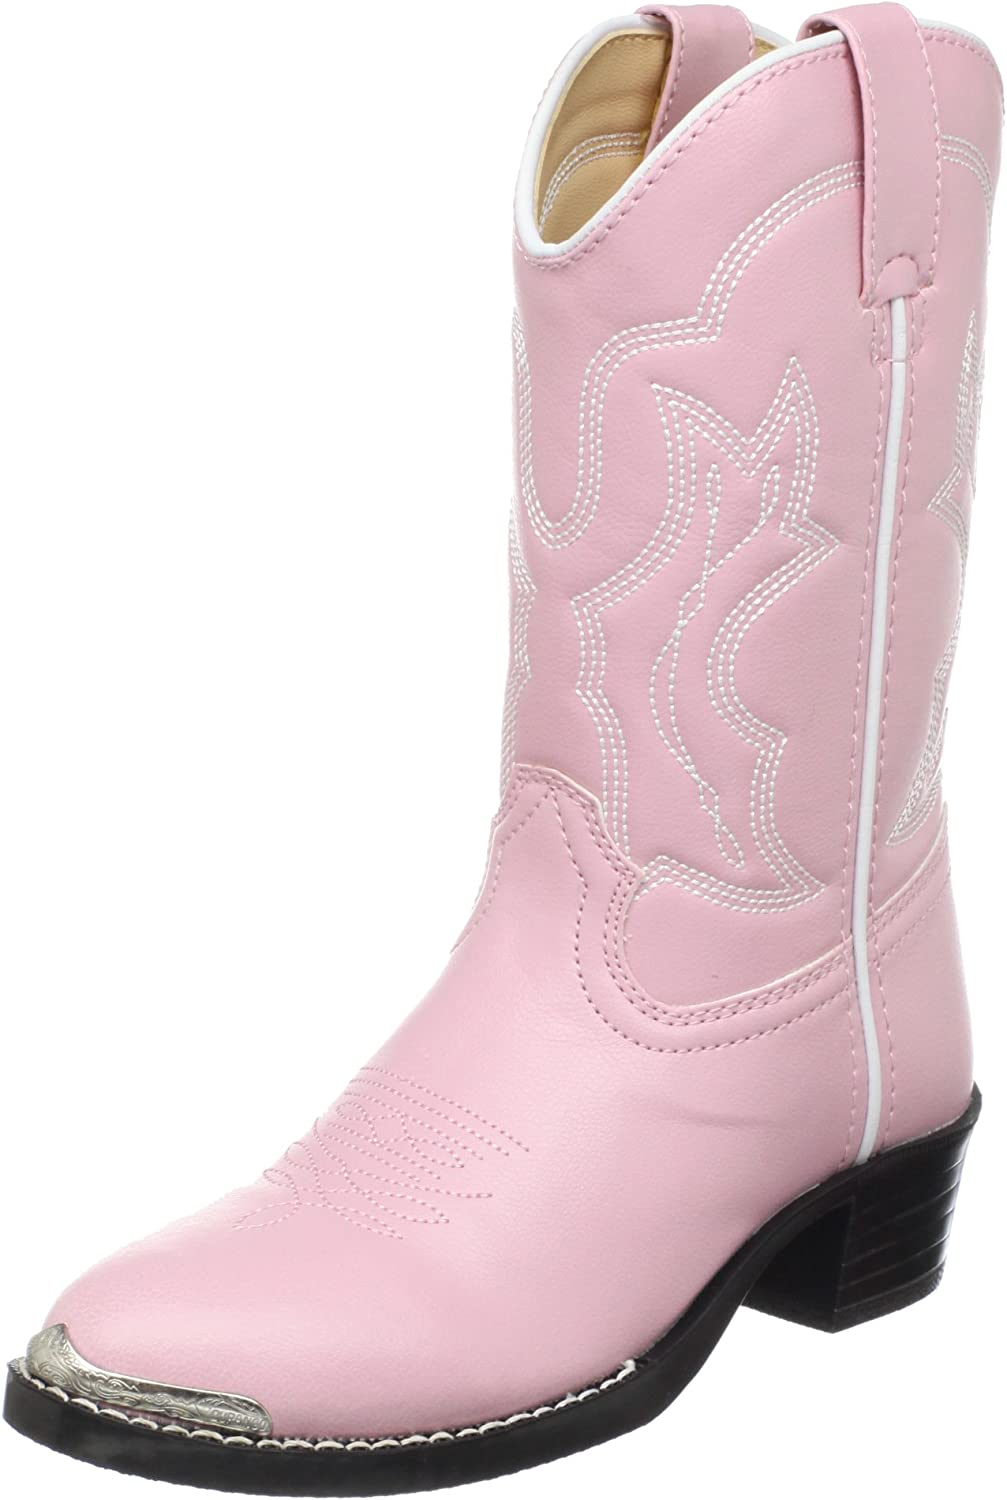 Old West Pink Toddler Girls Cross Square Toe Cowboy Western Boots